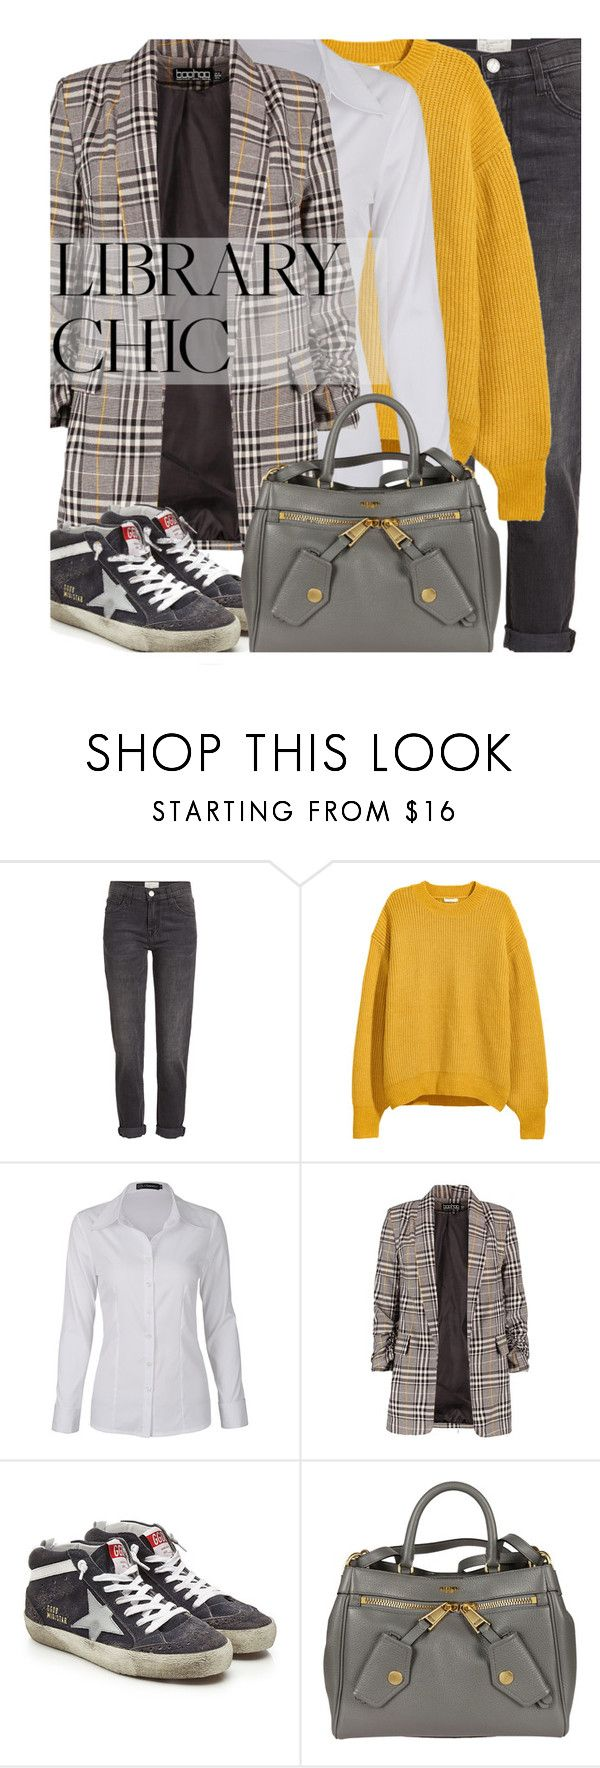 """""""Work Hard, Play Hard: Finals Season"""" by maranella ❤ liked on Polyvore featuring Current/Elliott, H&M, Golden Goose, Moschino and finals"""